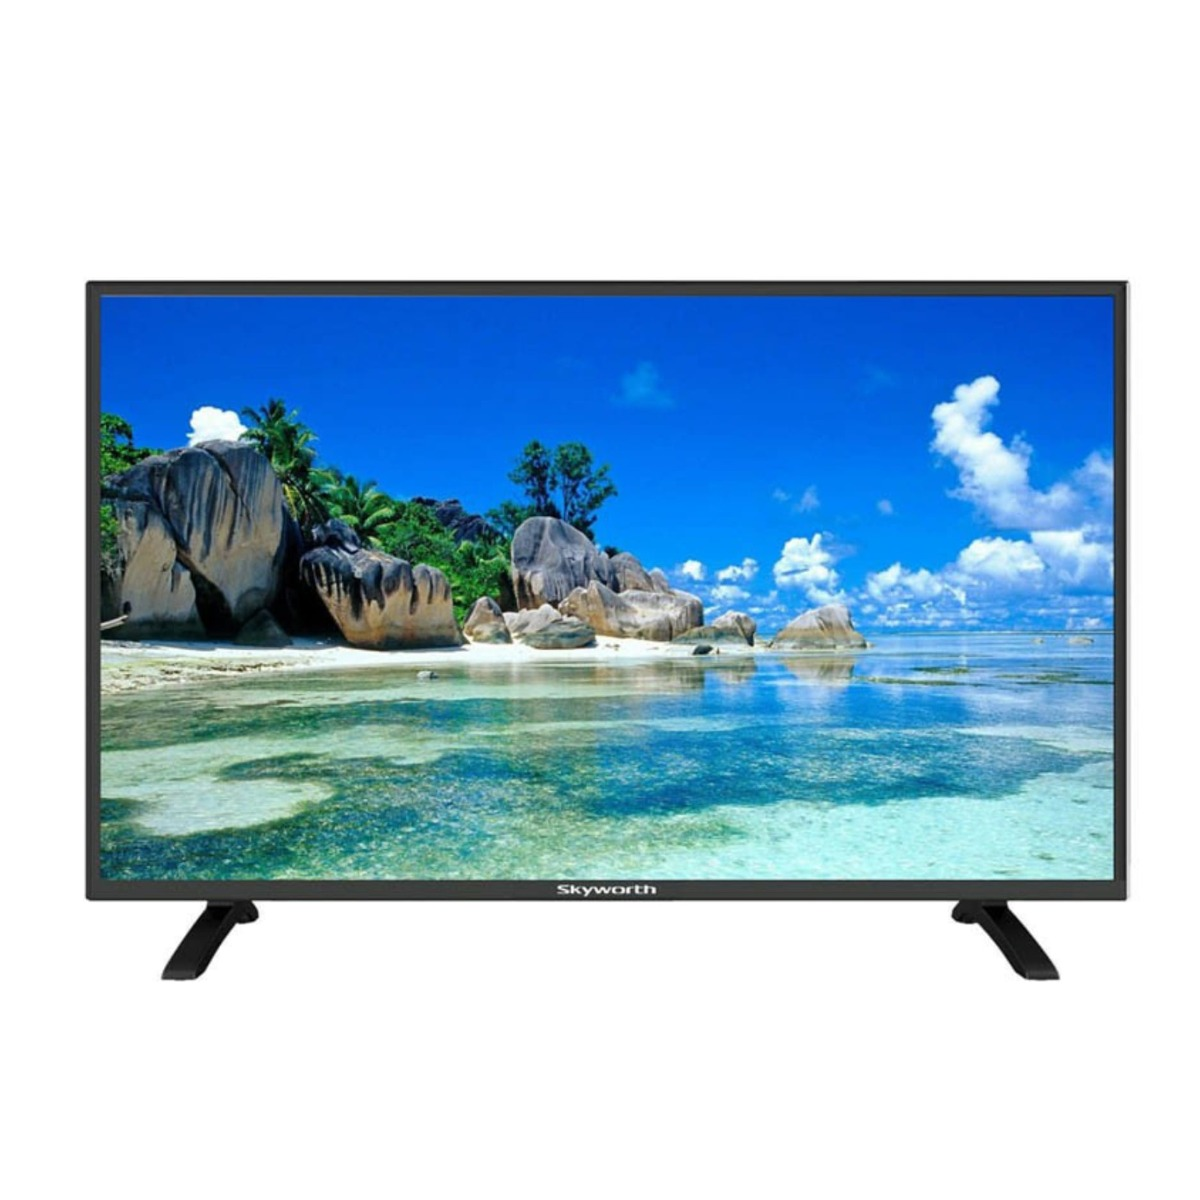 "SKYWORTH 32"" HD LED DIGITAL TV - Black"